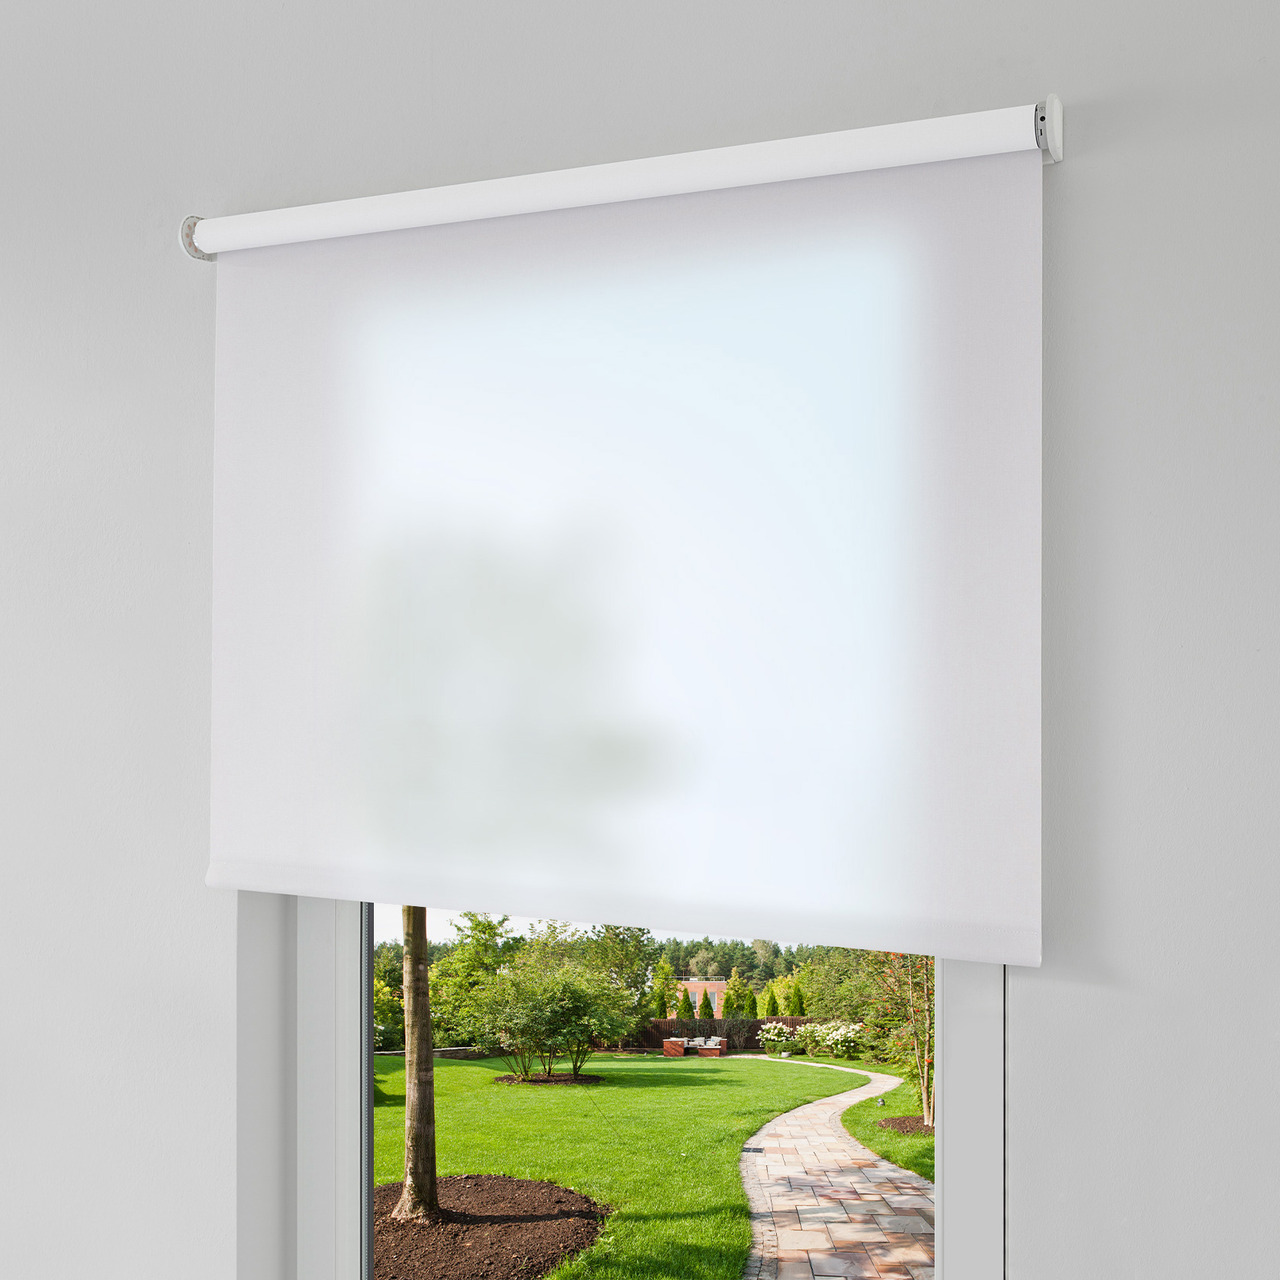 Erfal Smartcontrol Rollo by Homematic IP- 140 x 230 cm (B x H)- halbtransparent tageslicht weiss